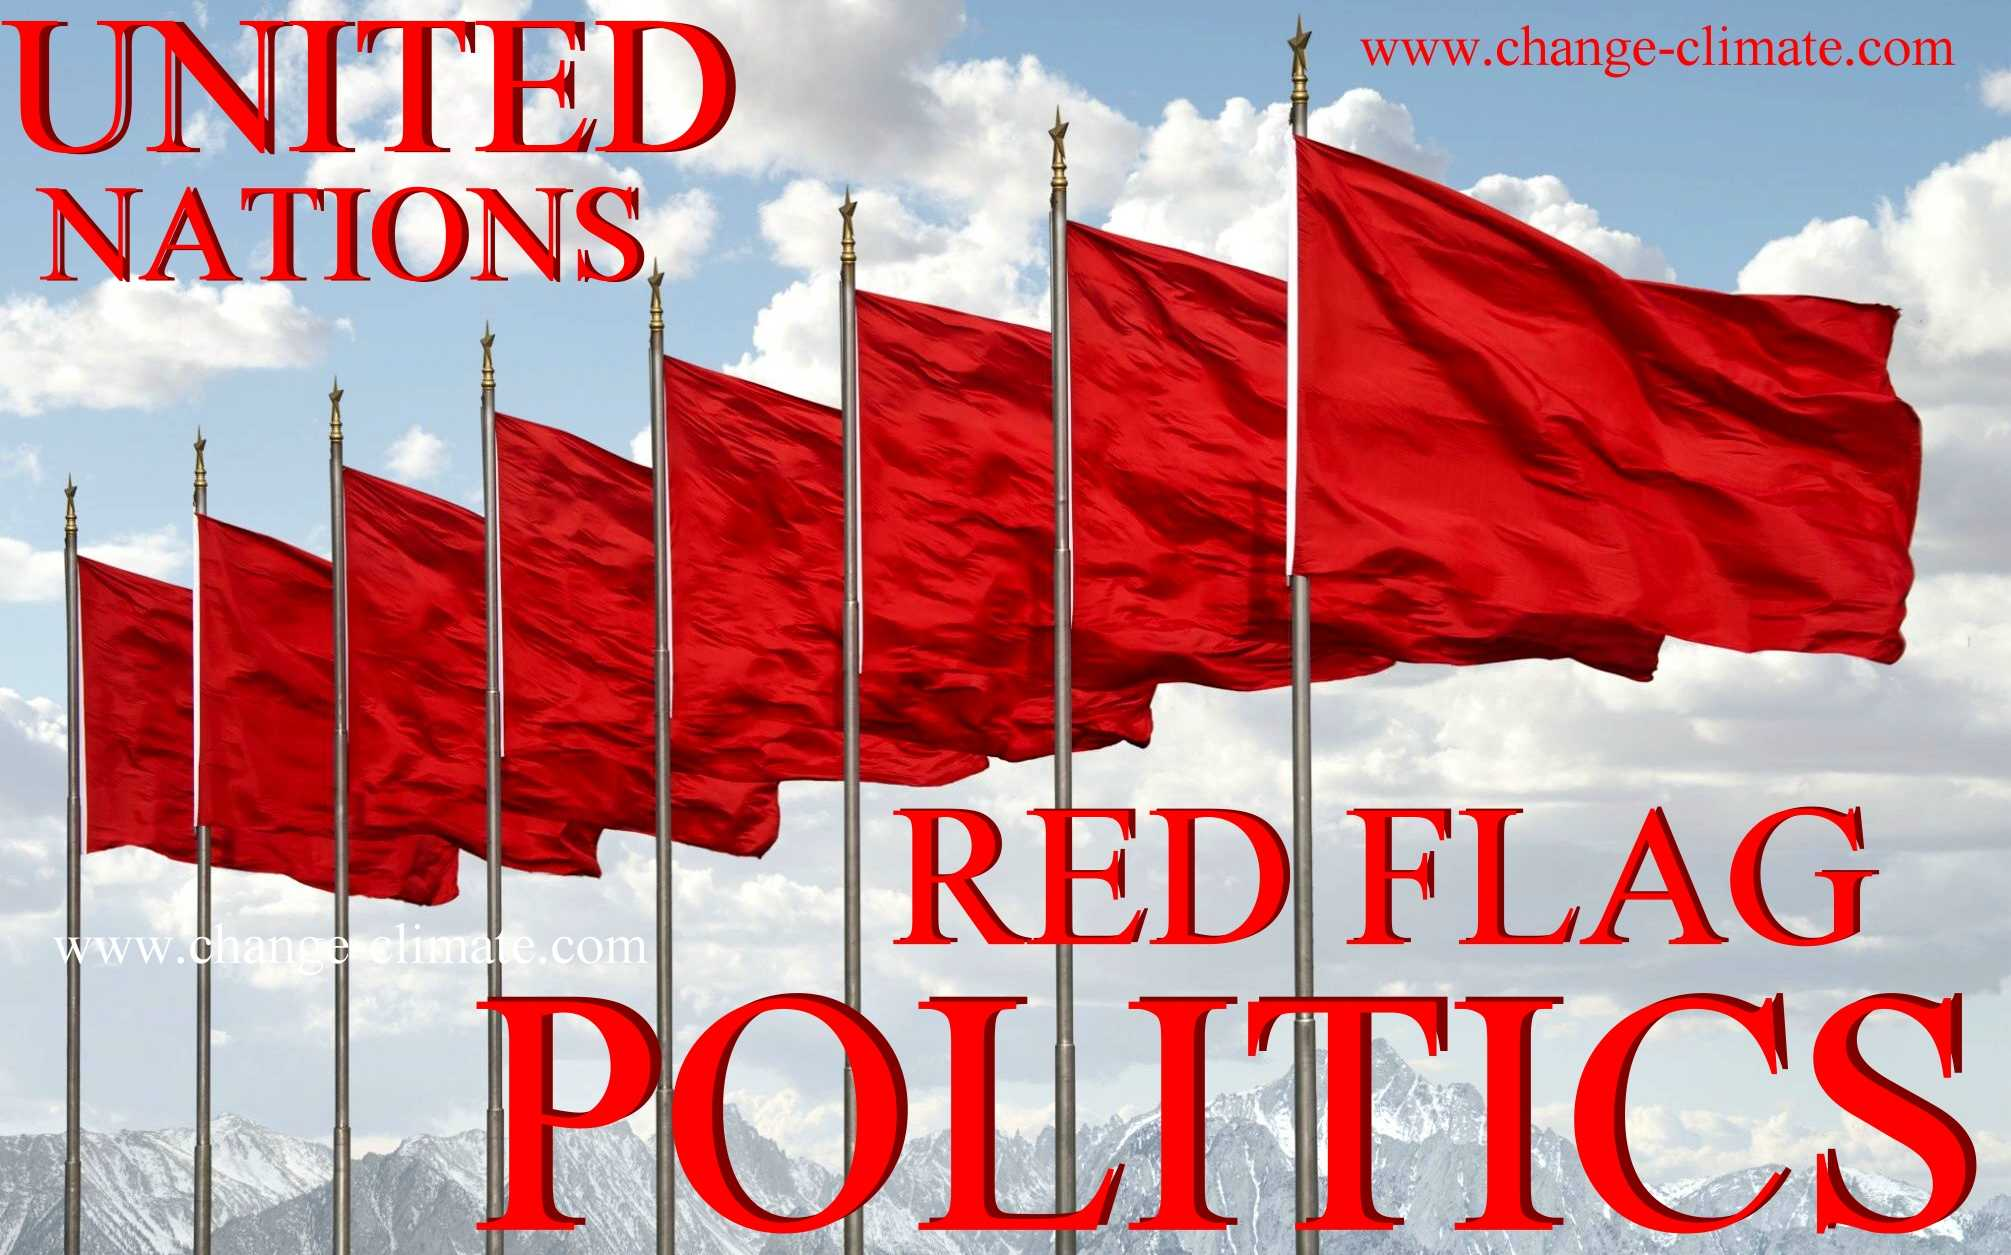 Red flag corruption in politics and policy making